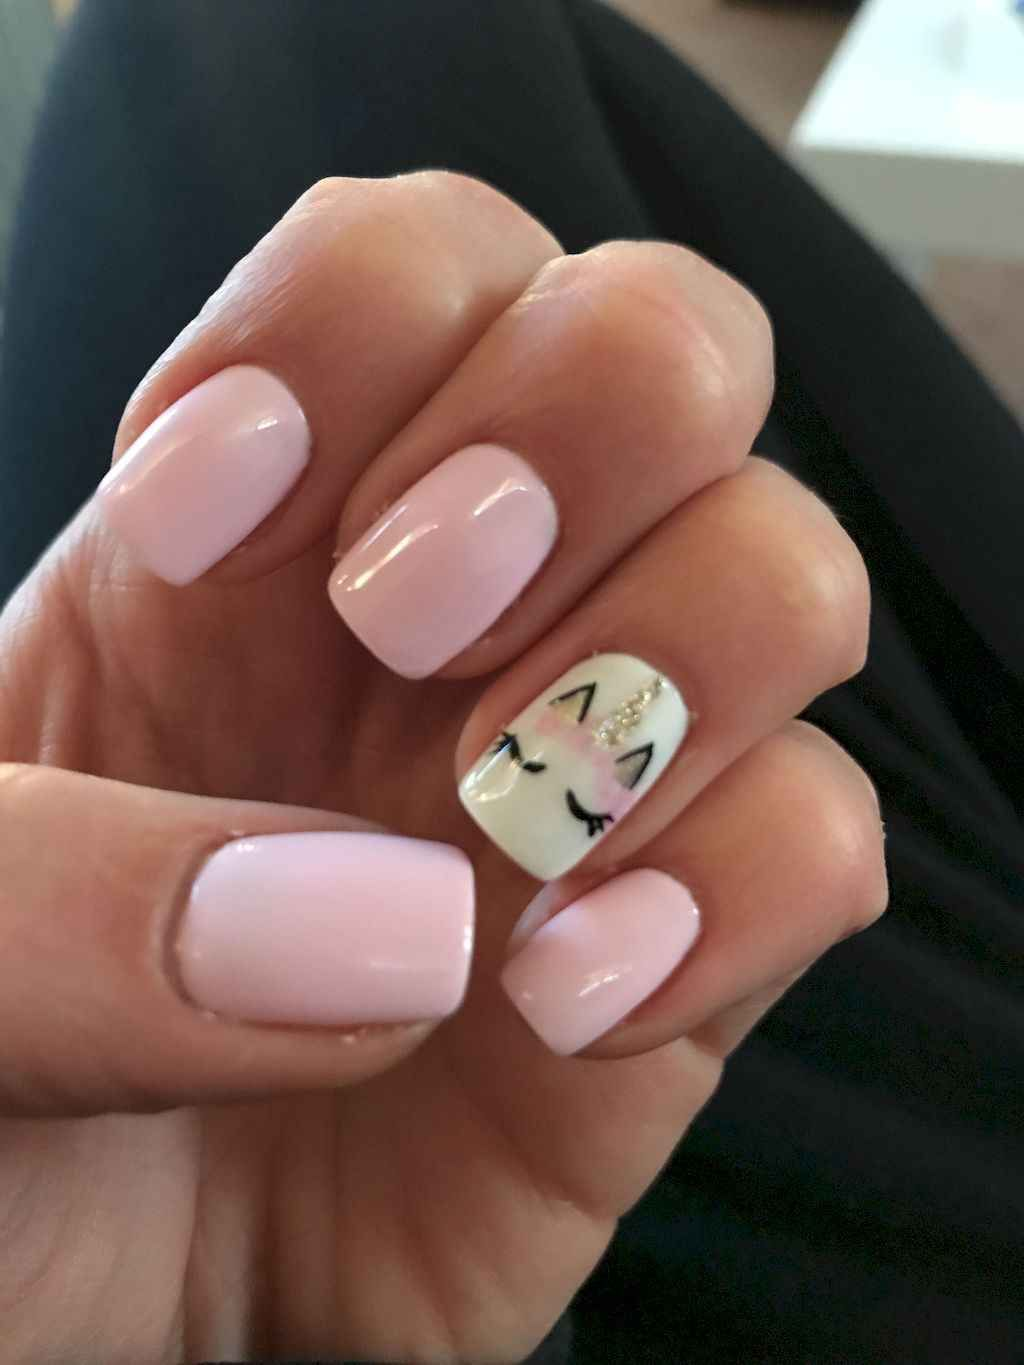 37 Unicorn Nail Art Ideas That Are Truly Magical Unicorn Nails Designs Short Acrylic Nails Unicorn Nails